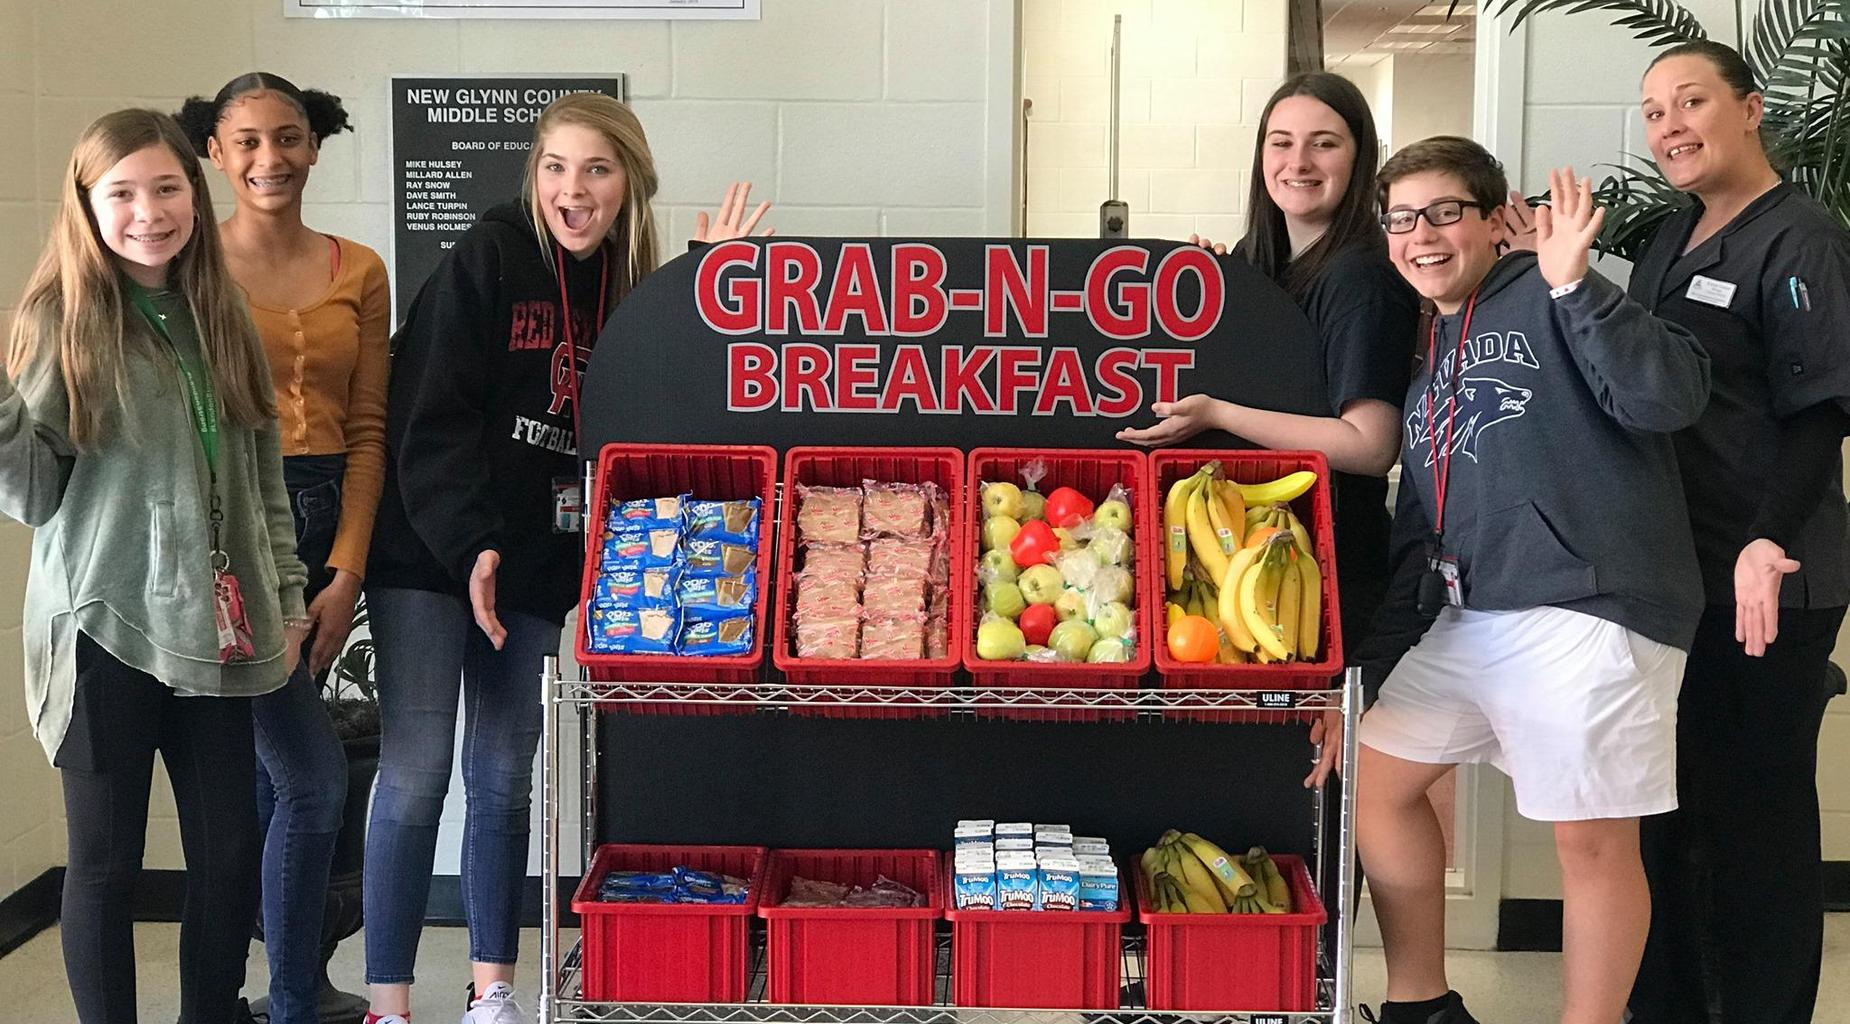 Students pose with Grab 'N Go carts.